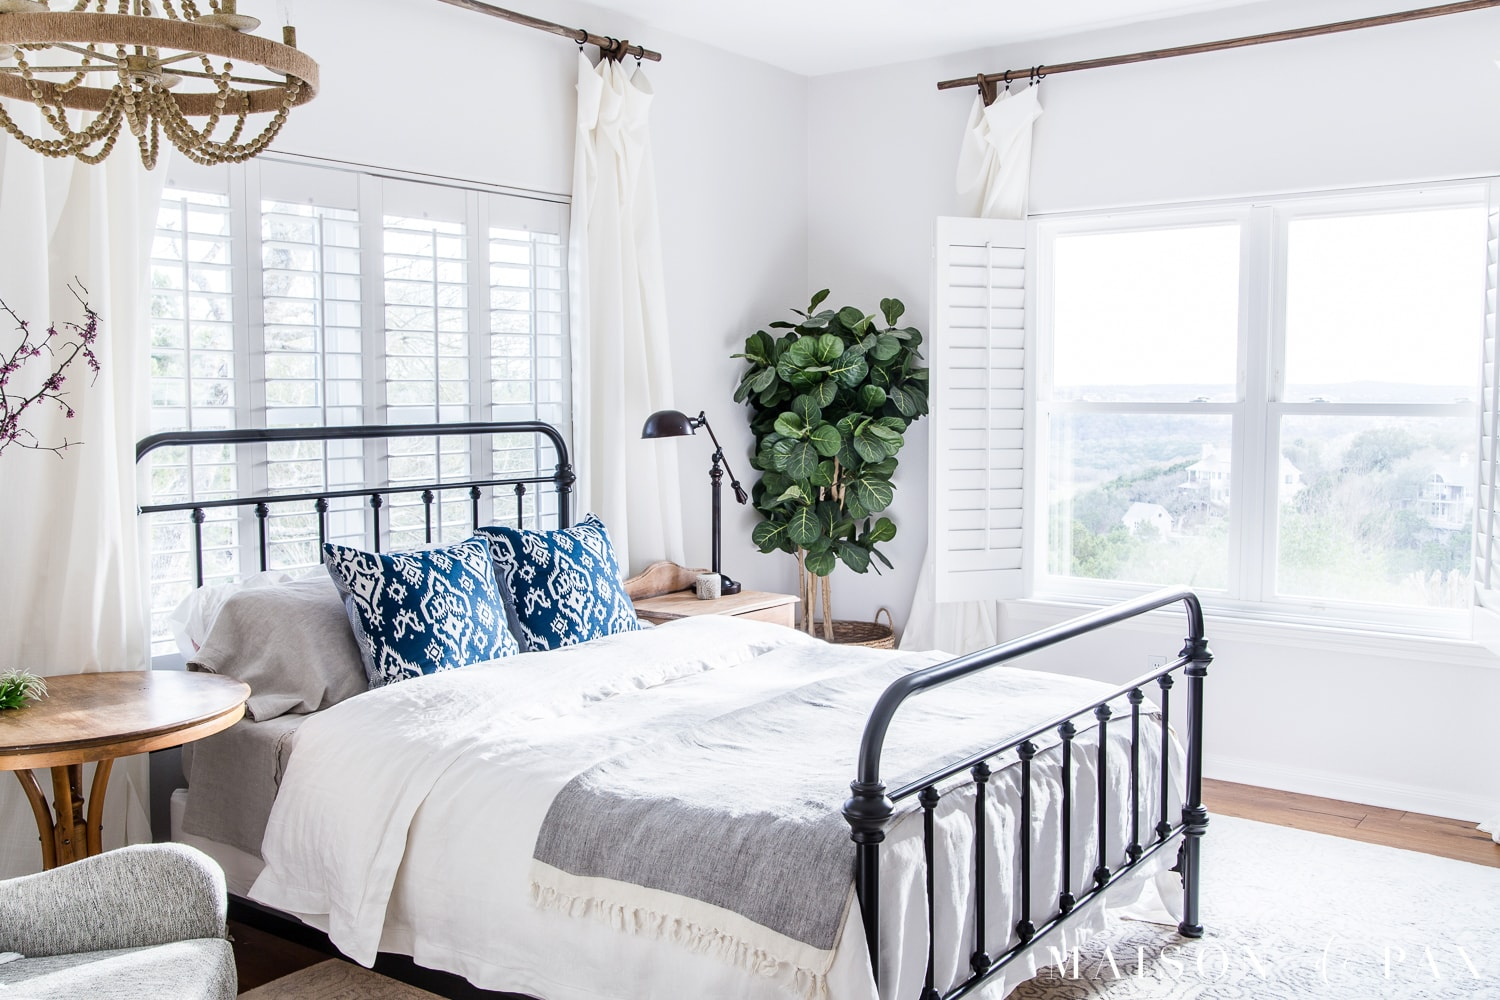 Charming Mostly White Master Bedroom   So Bright And Open. Looking To Add A Seasonal  Touch